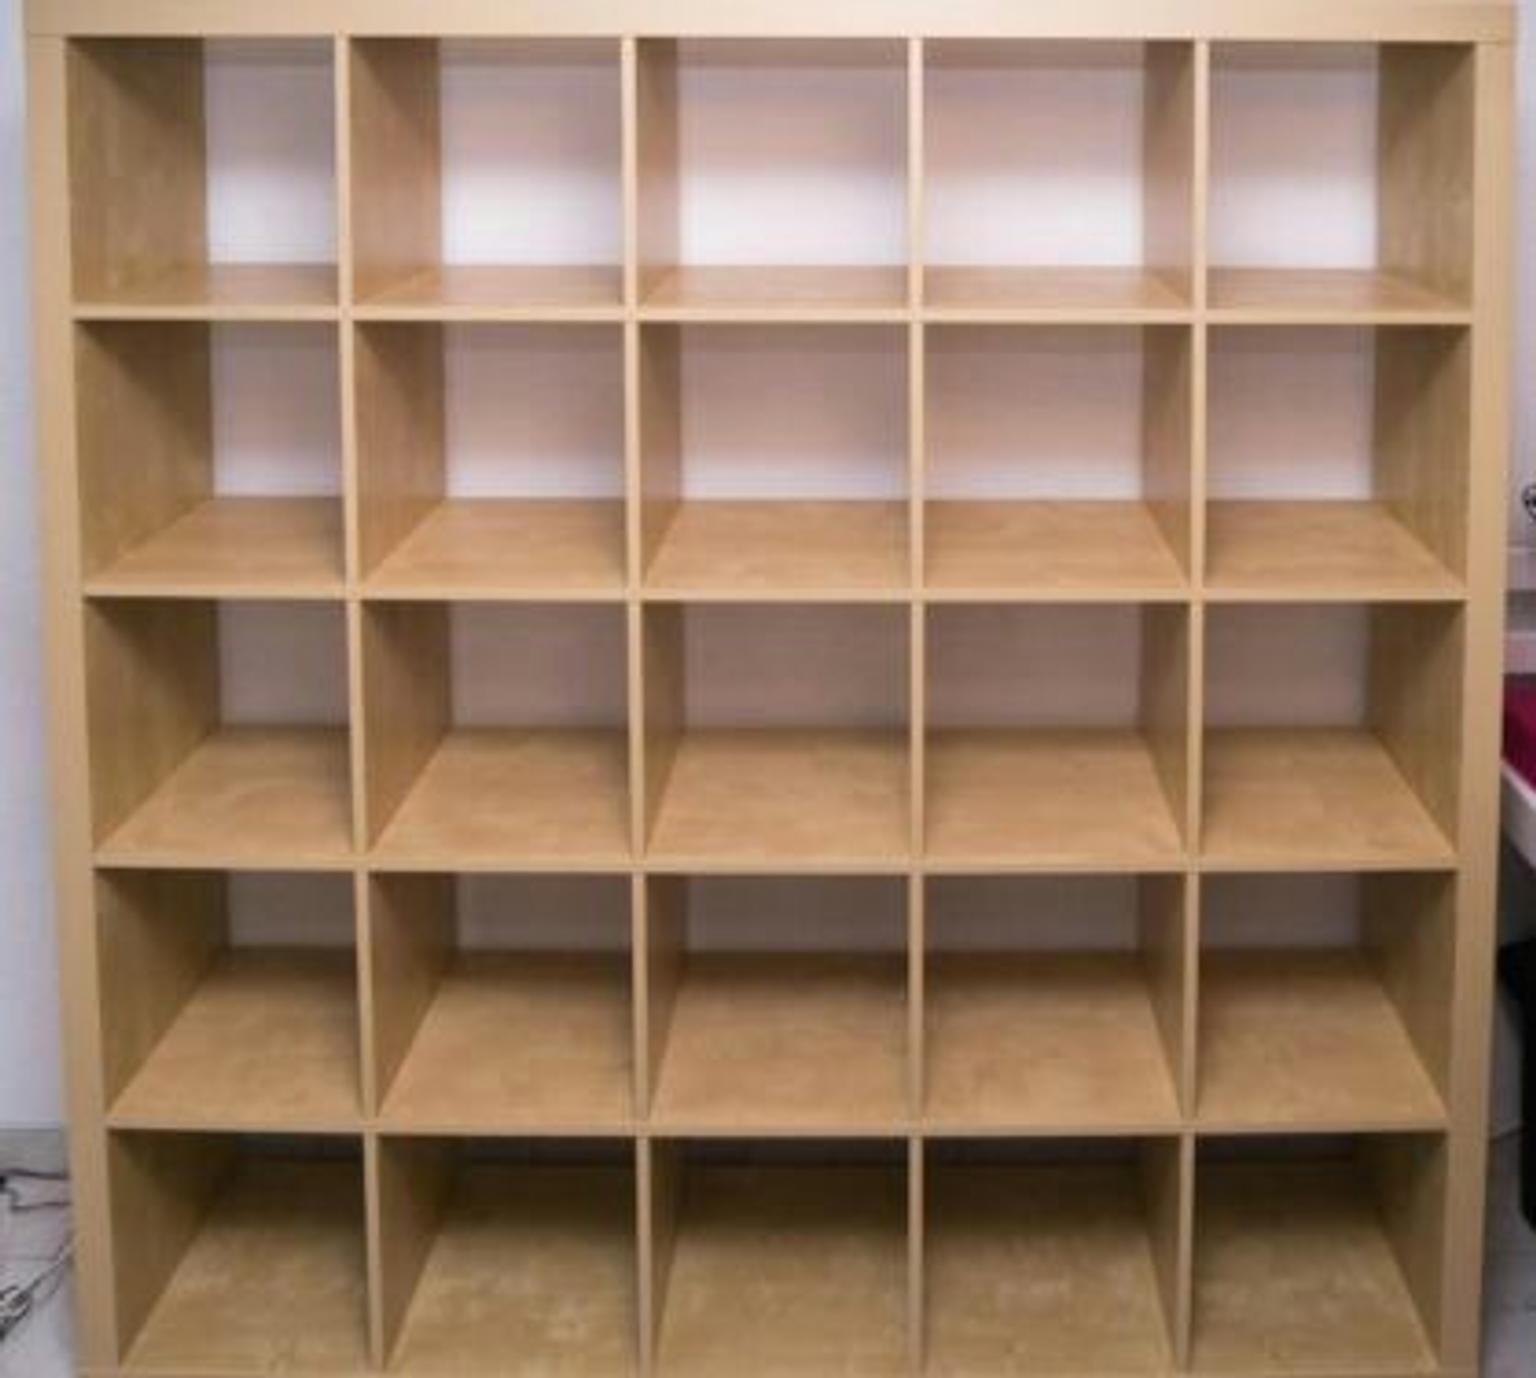 Ikea Expedit Regal 5x5 in Buche in 65185 Wiesbaden für € 90